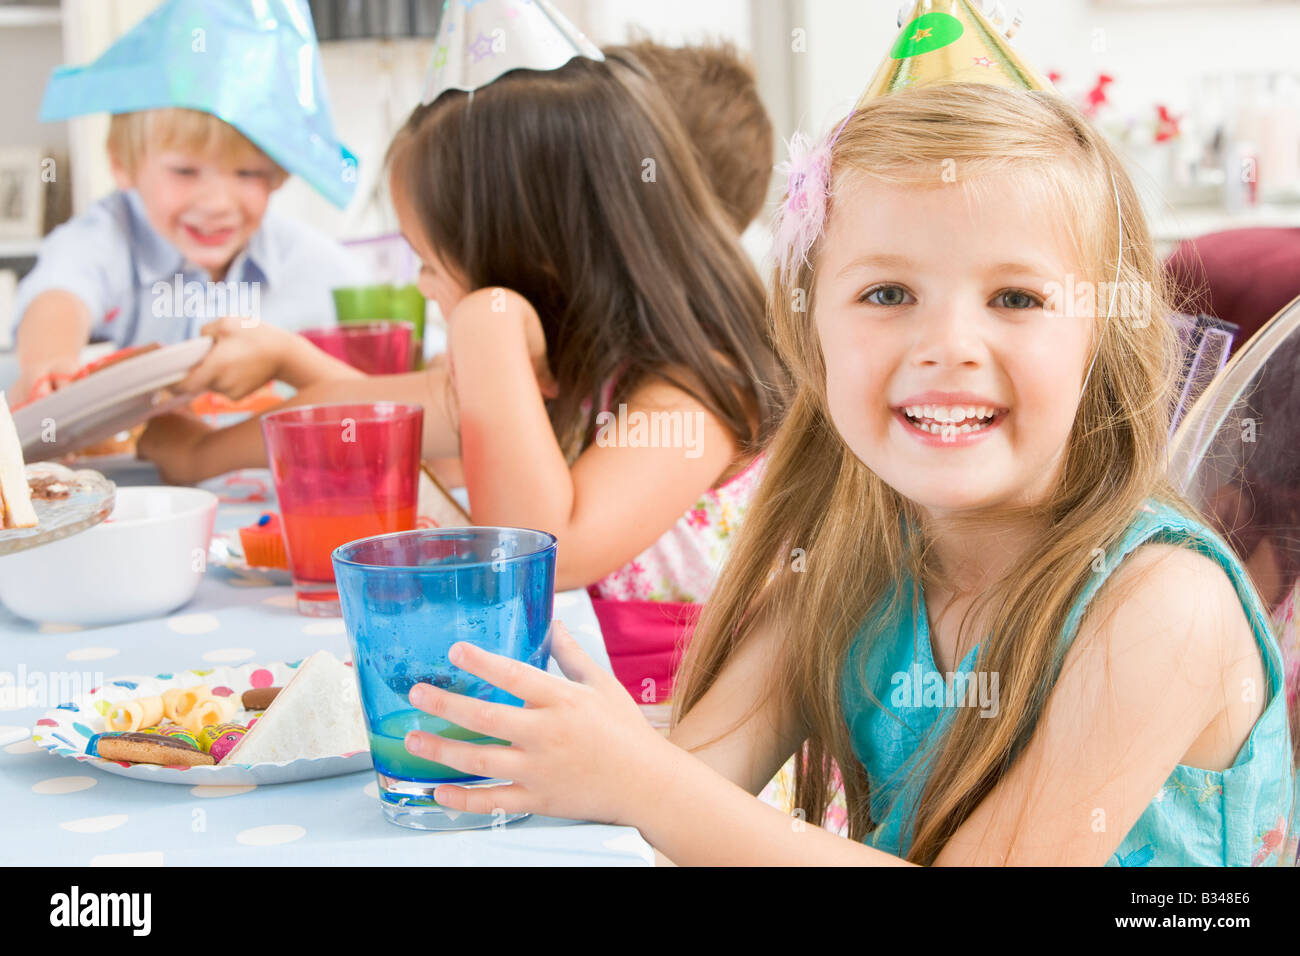 Young girl at party sitting at table with food smiling - Stock Image